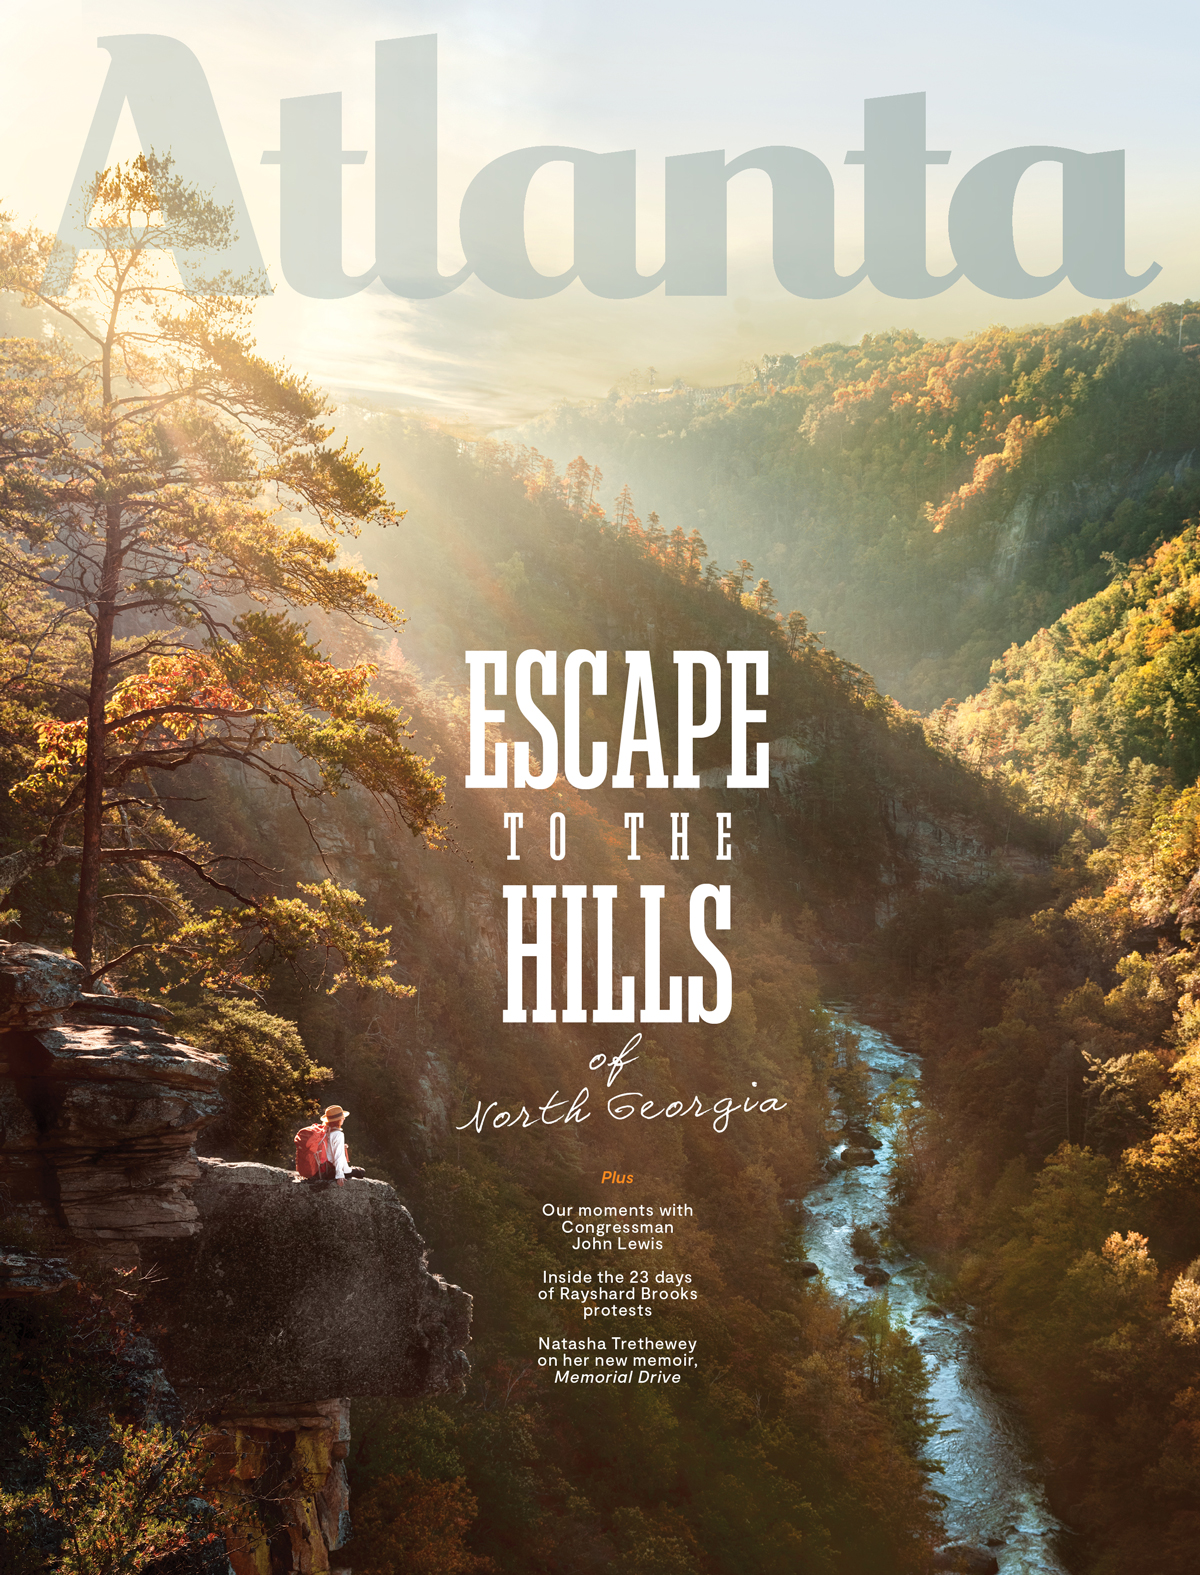 Atlanta Magazine September 2020 cover - mountains